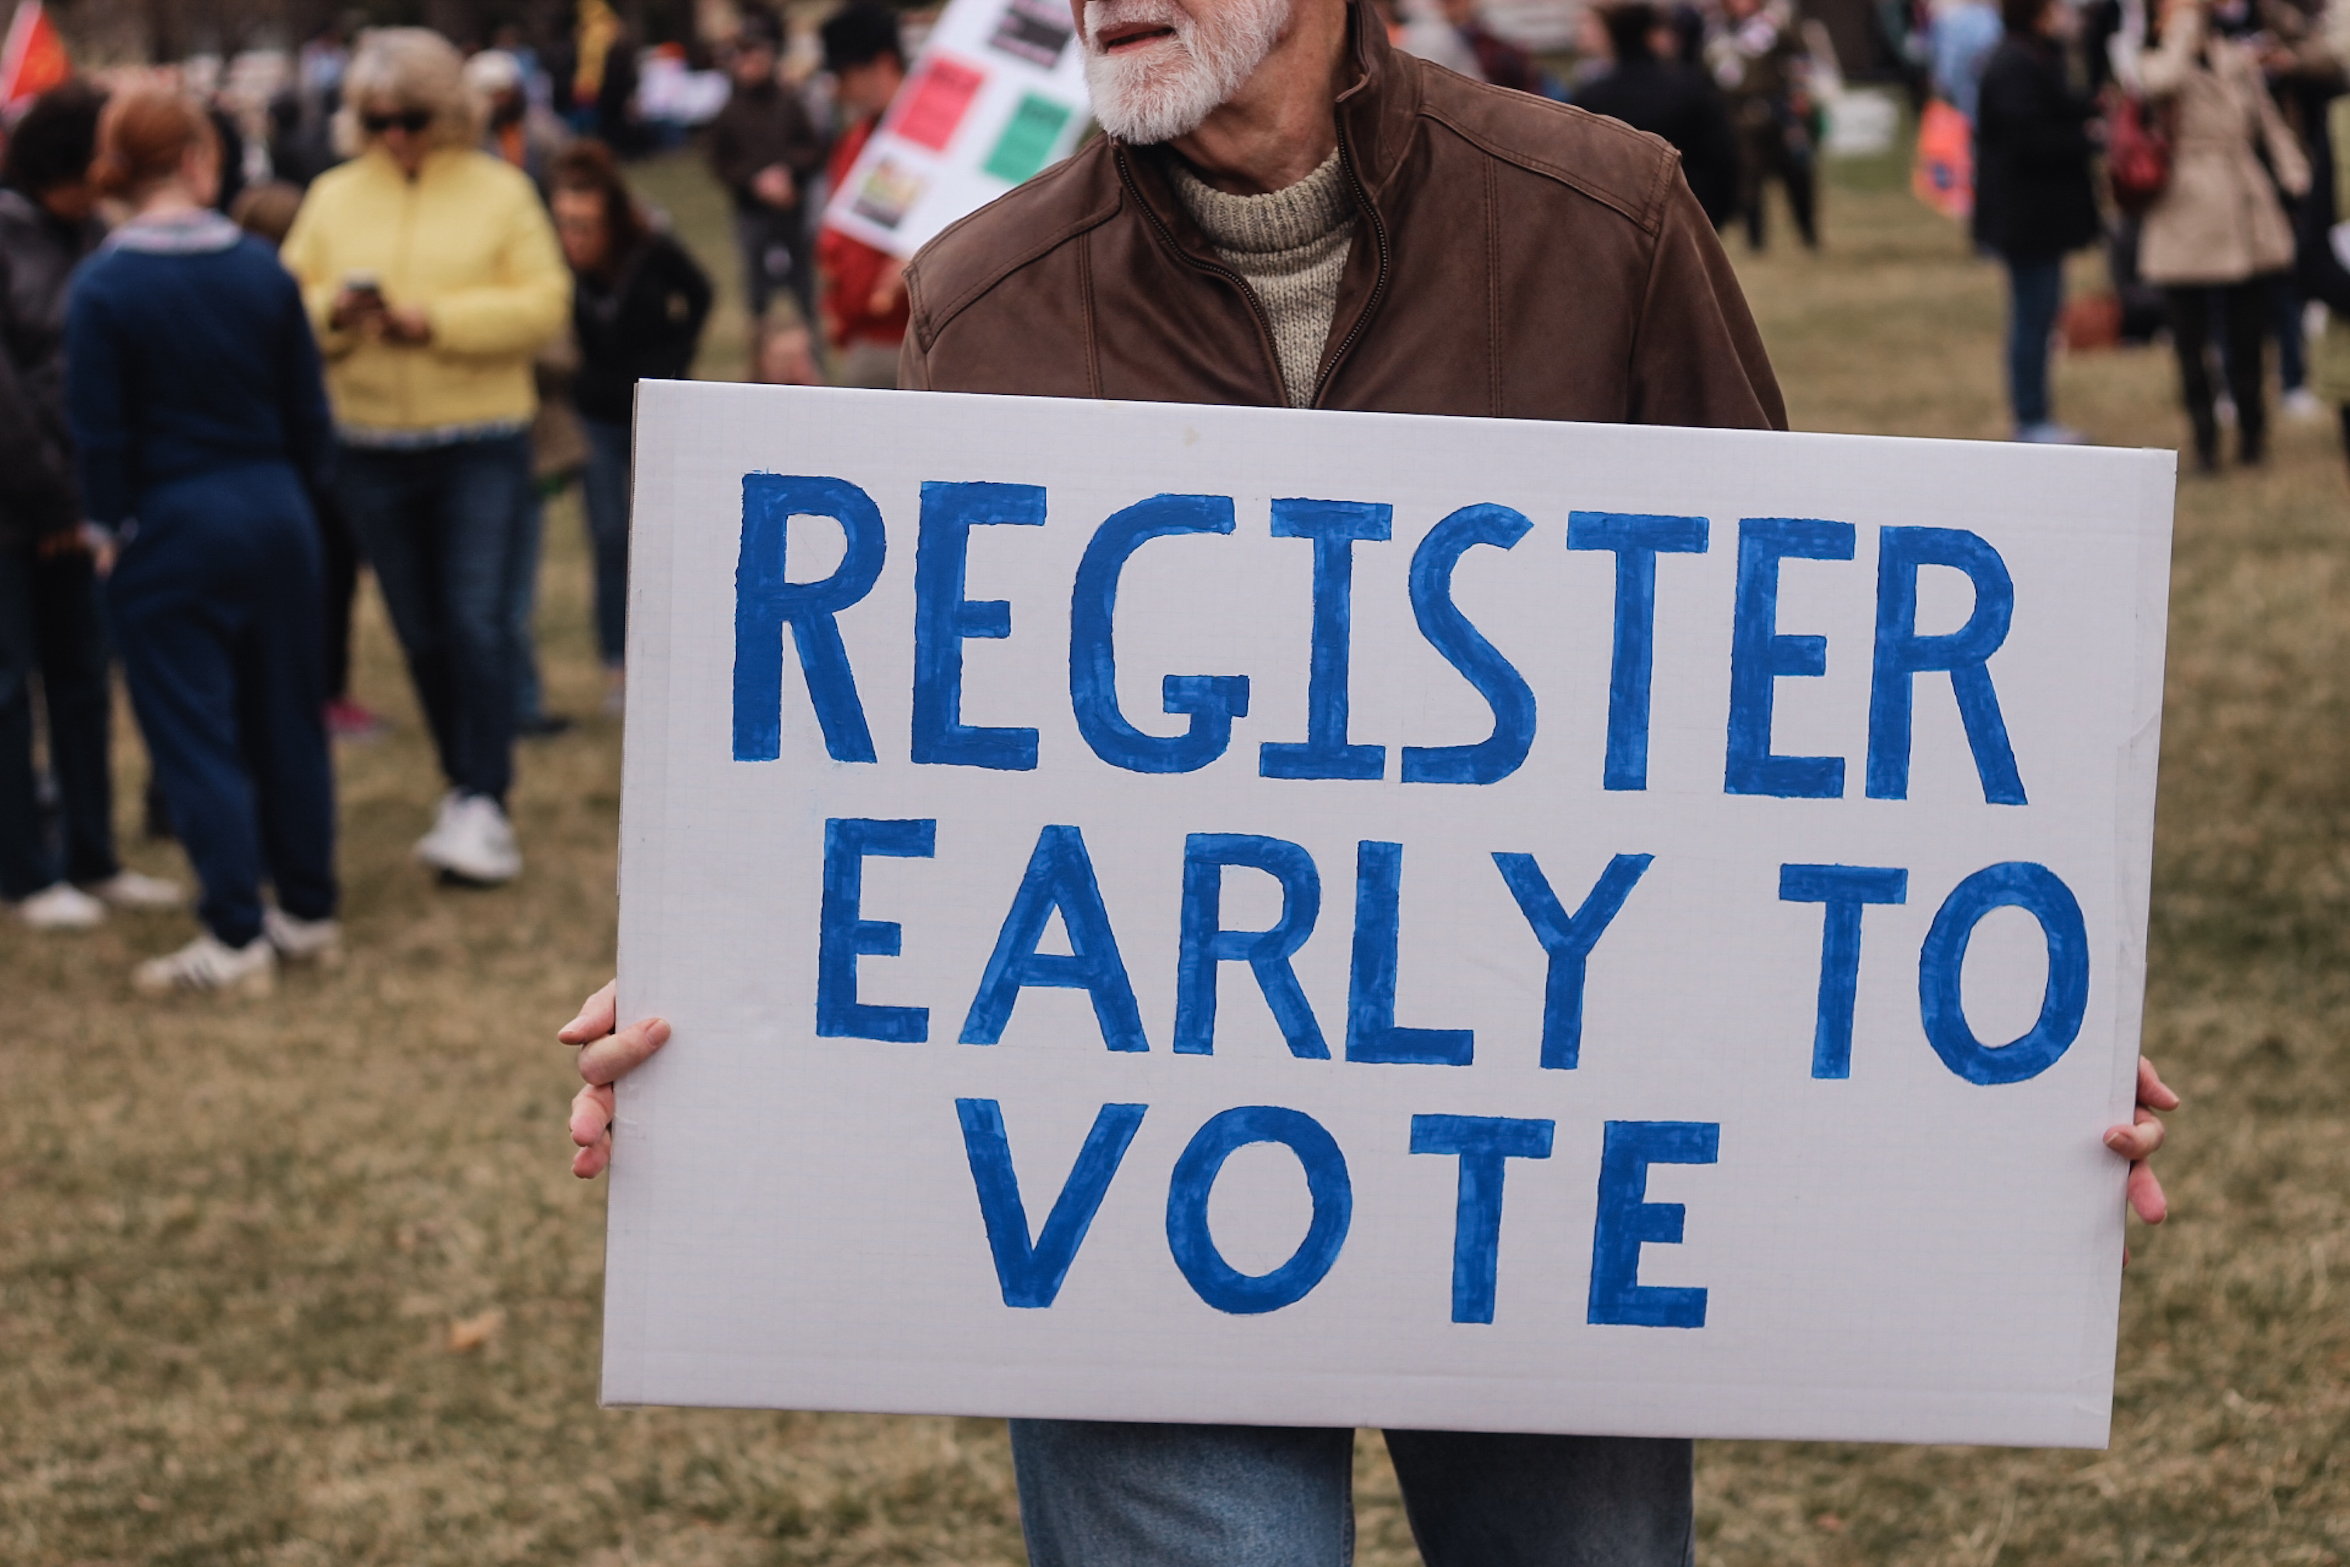 STEP 1: REGISTER TO VOTE - To vote you must be: A resident of Virginia, a U. S. Citizen, 18 years old by November 5, 2019, not currently declared mentally incompetent by a court of law, and if convicted of a felony, your right to vote must have been restoredDeadline to register to vote in the June primaries: Monday, May 20